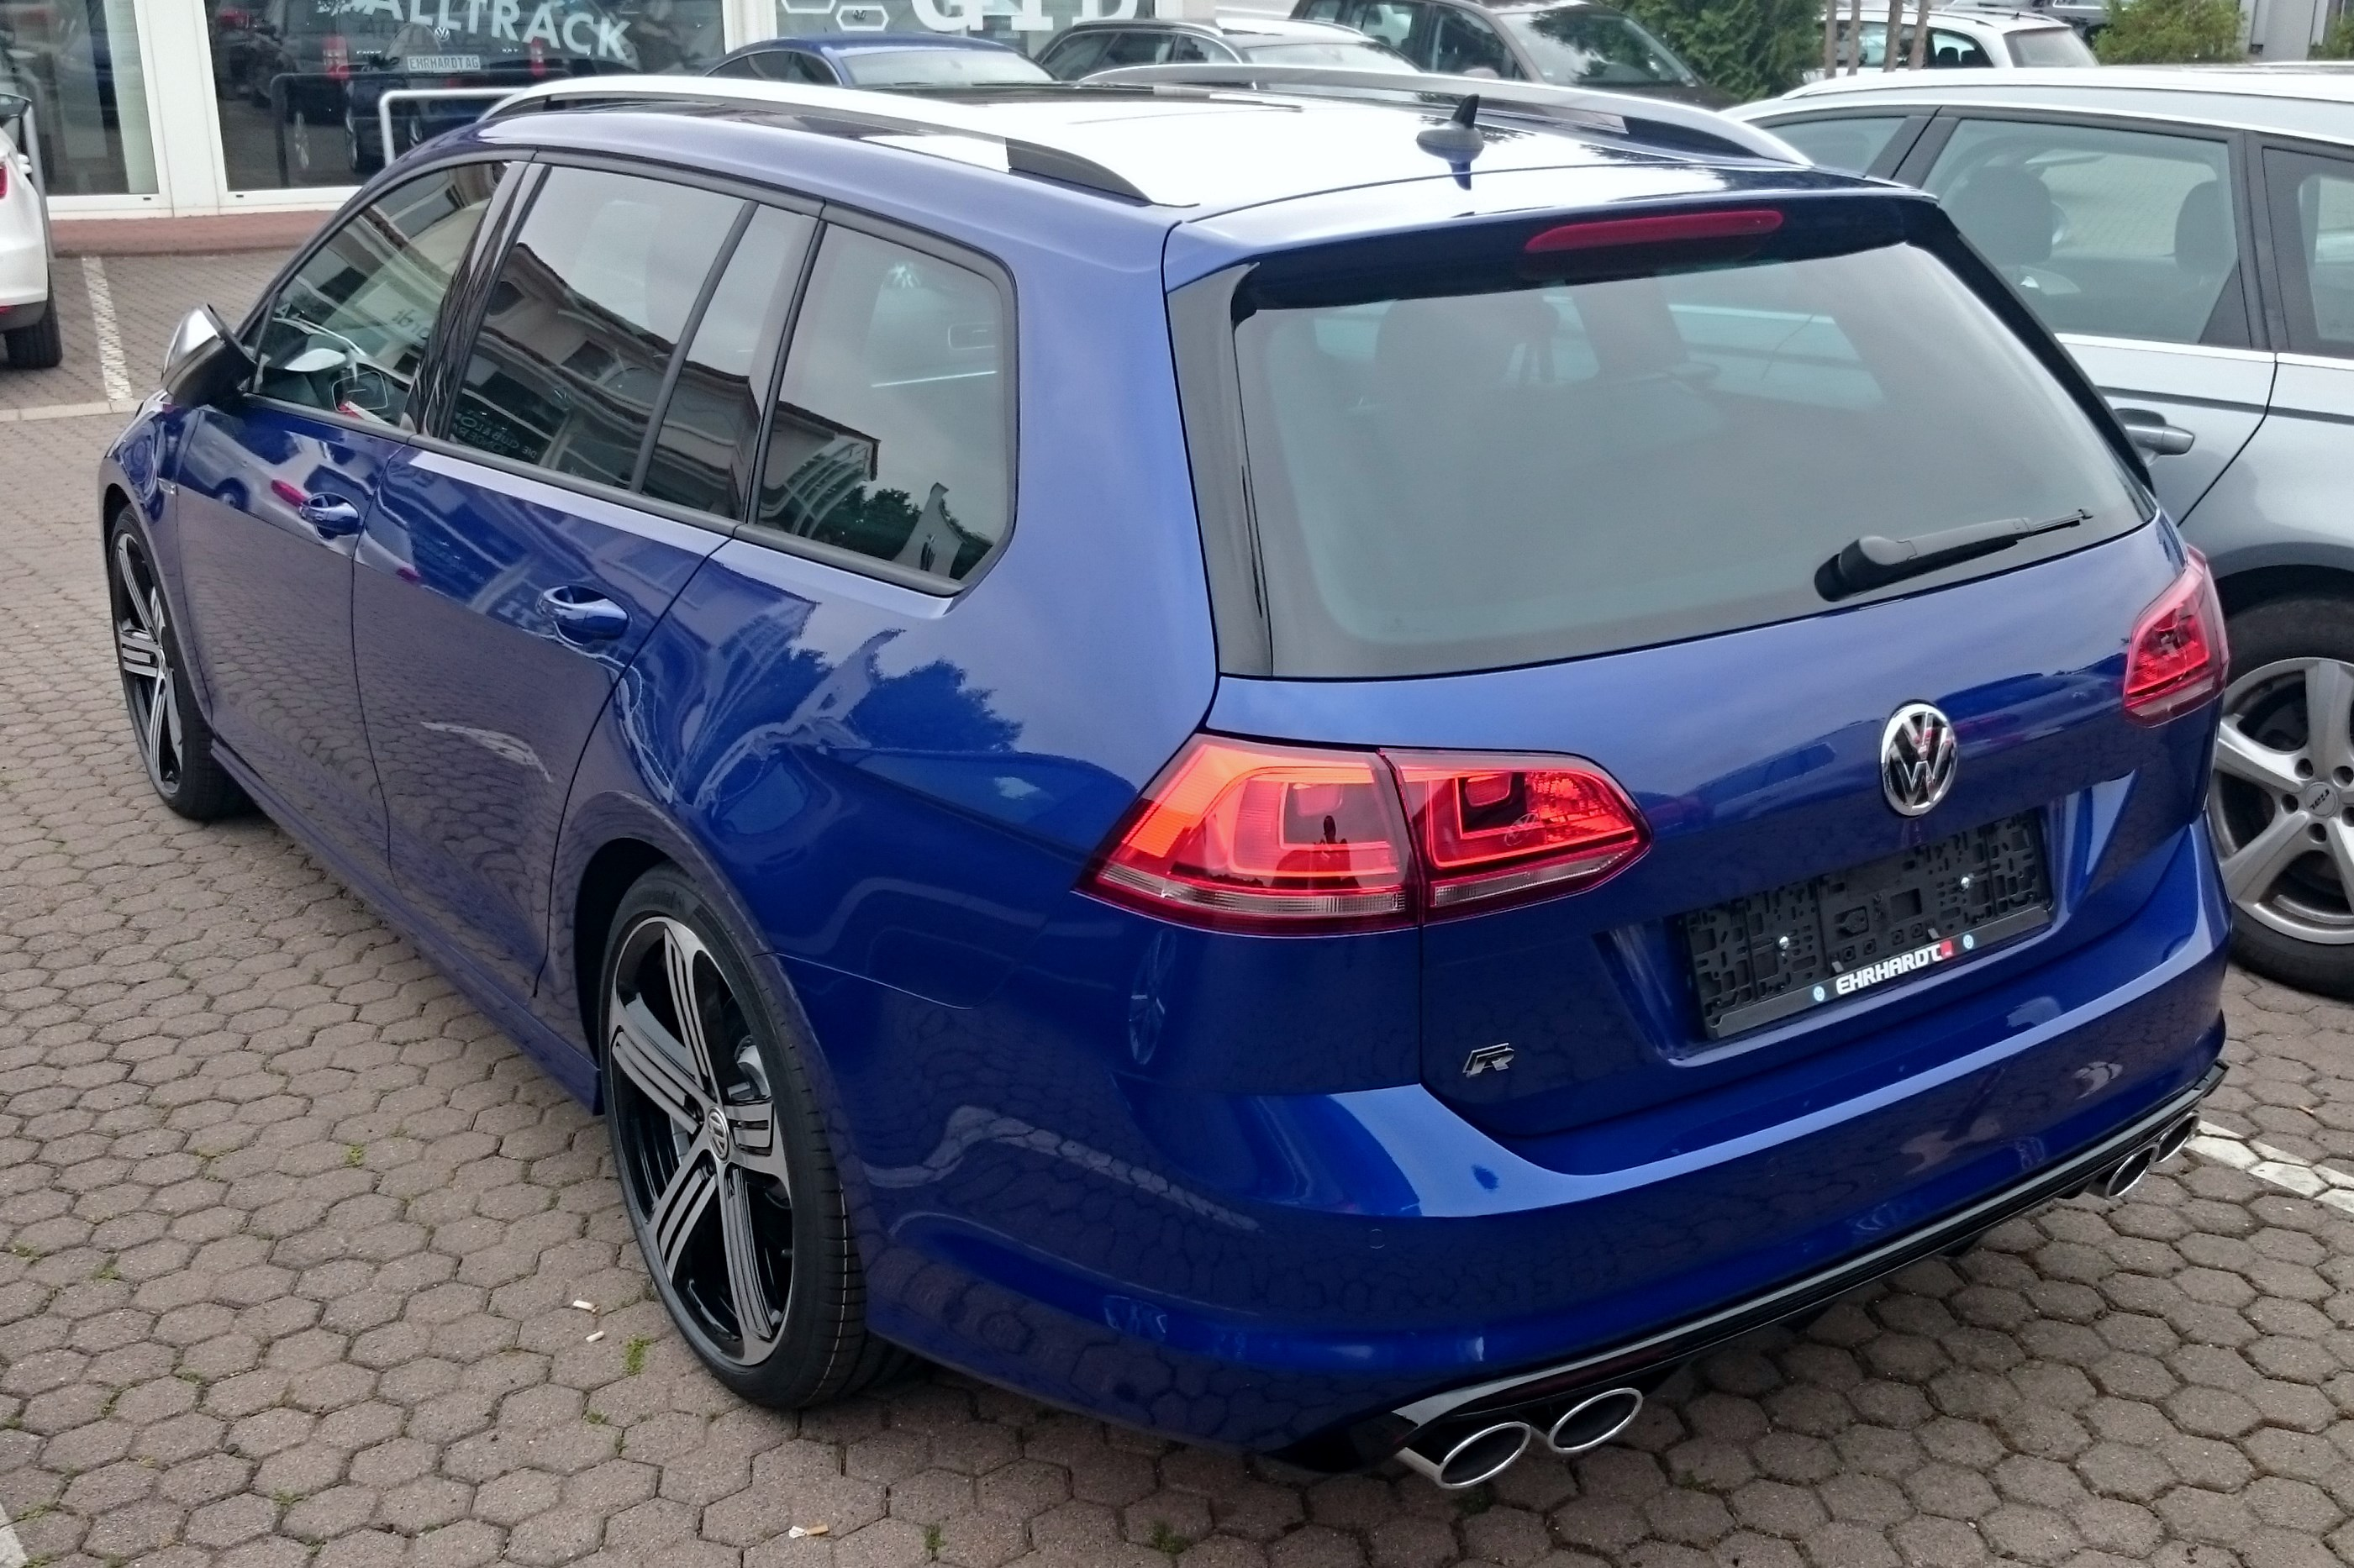 golf 7 r vw golf 7 r quotes volkswagen golf vii r rendered autoevolution abt previews its. Black Bedroom Furniture Sets. Home Design Ideas